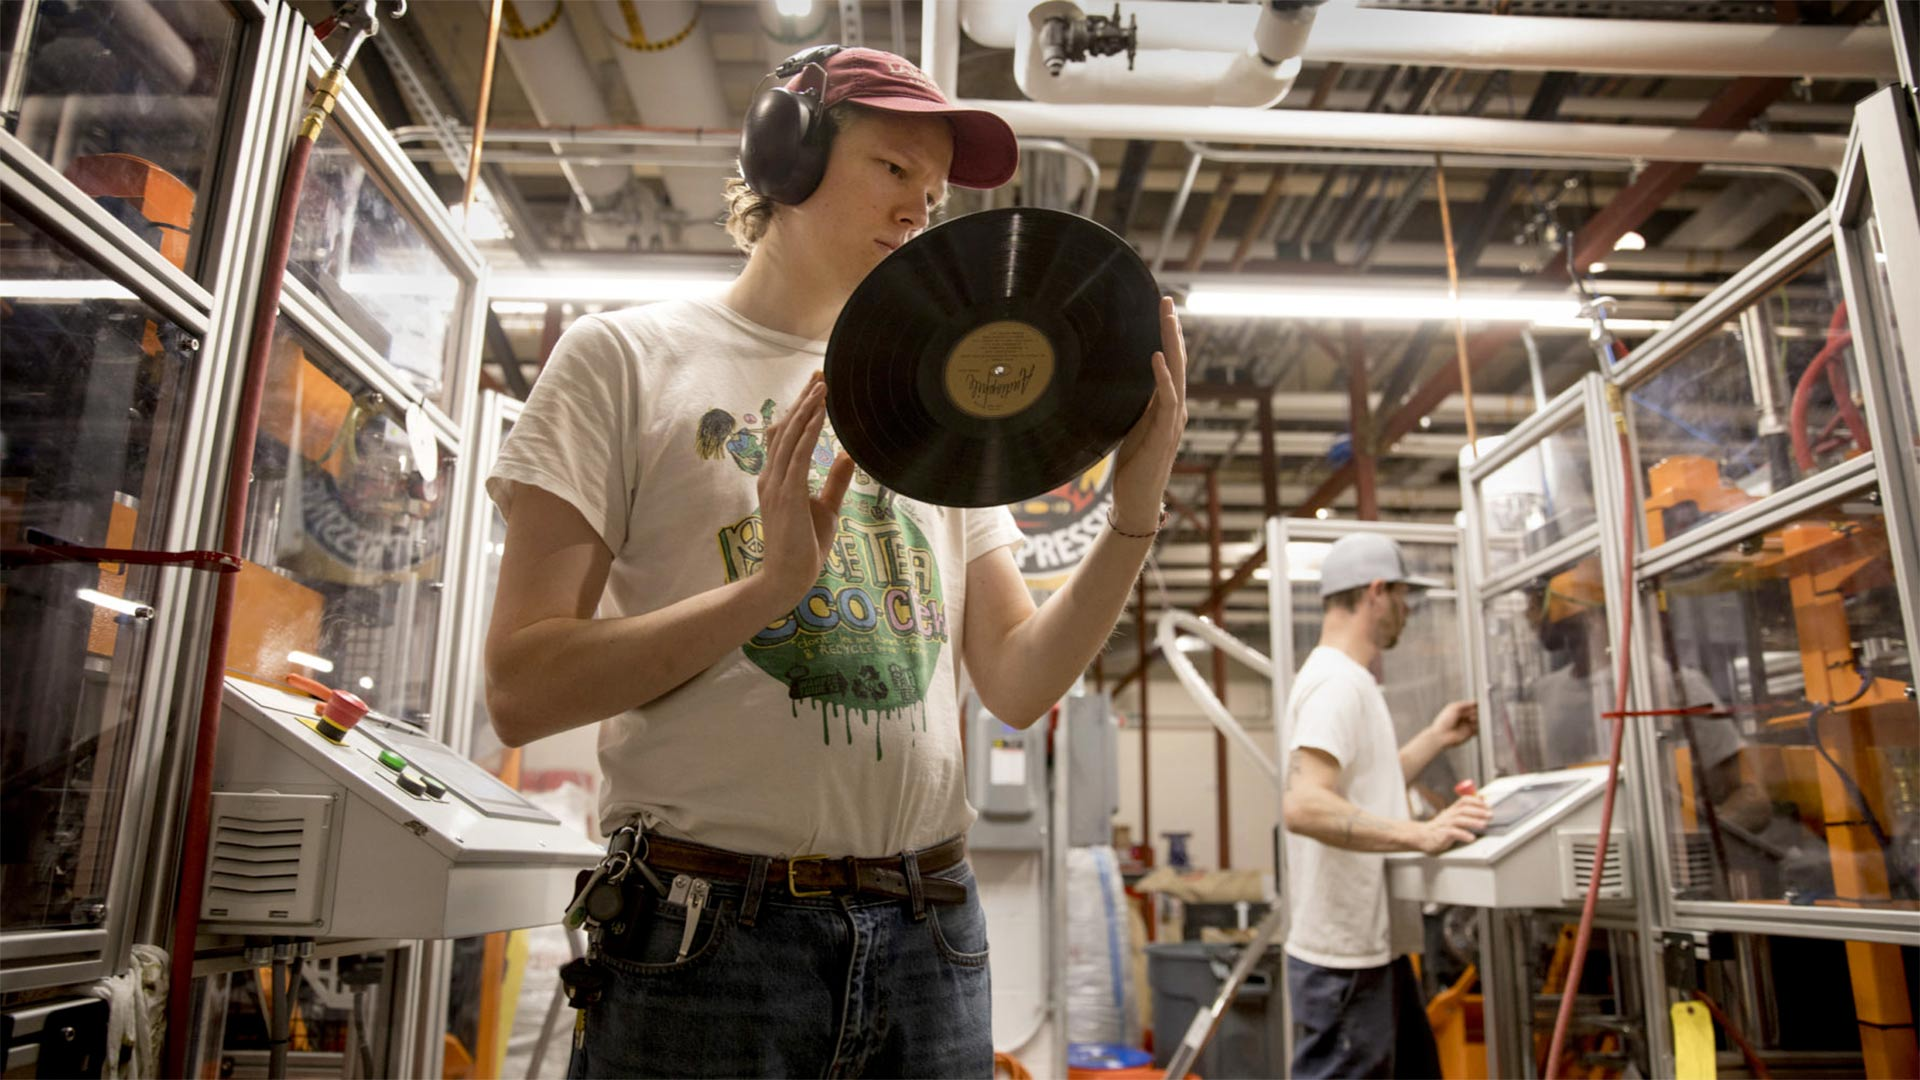 Willem Ytsma inspects a record at Alexandria's Furnace Record Pressing, the country's newest vinyl manufacturing plant. Renewed interest in records has breathed new life into a format long thought dead.